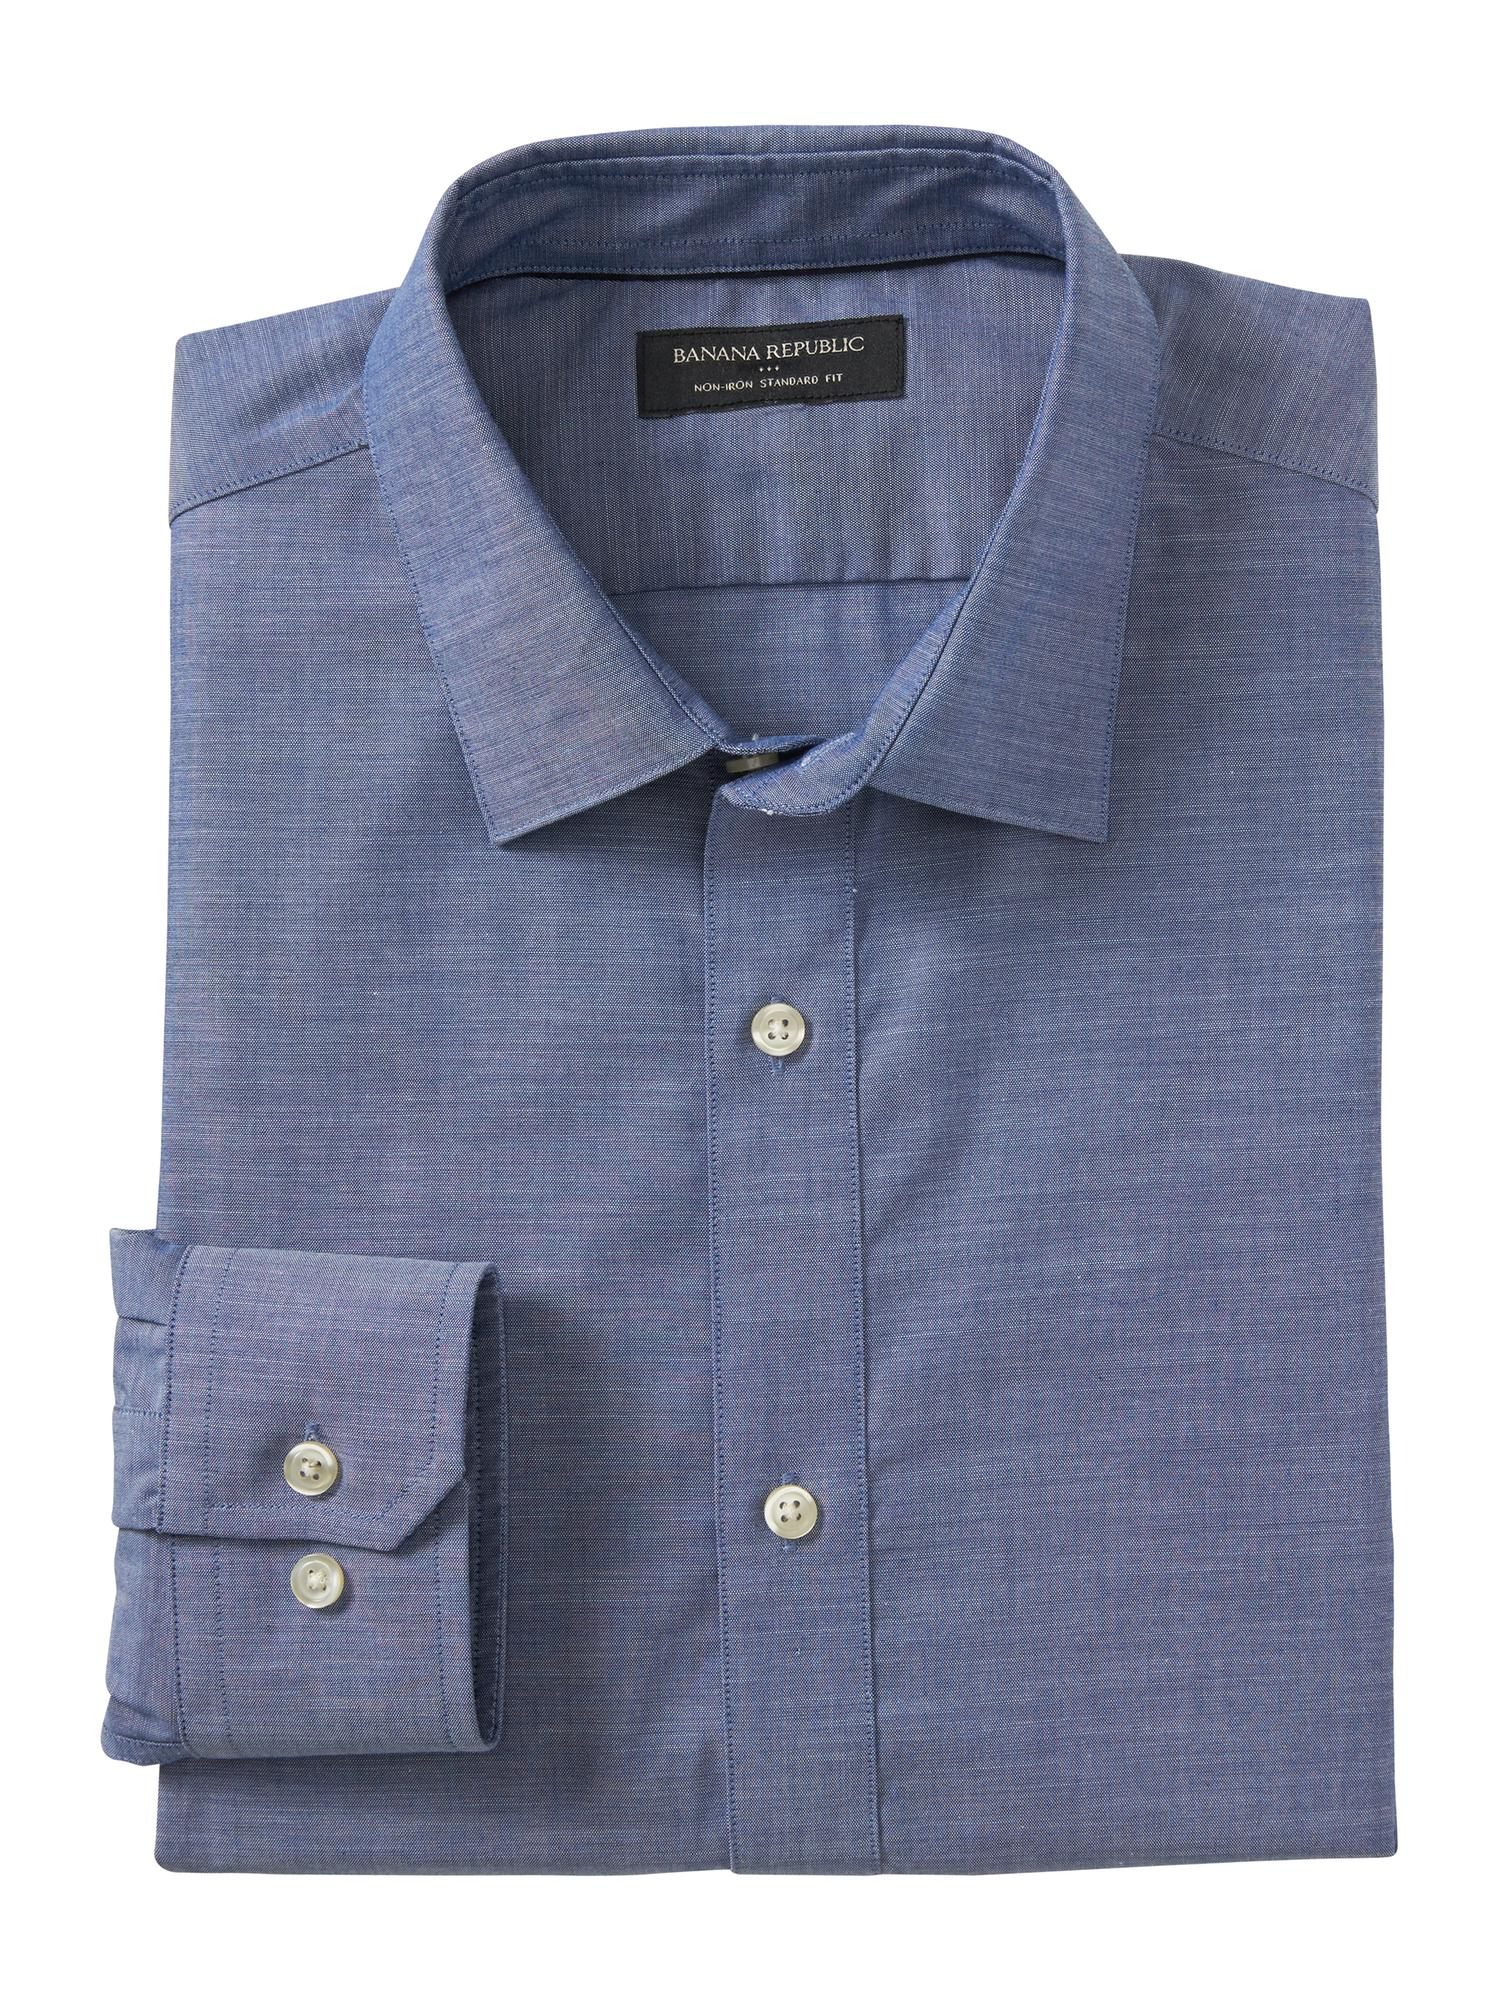 01f220aab0 Standard-Fit Non-Iron Chambray Shirt